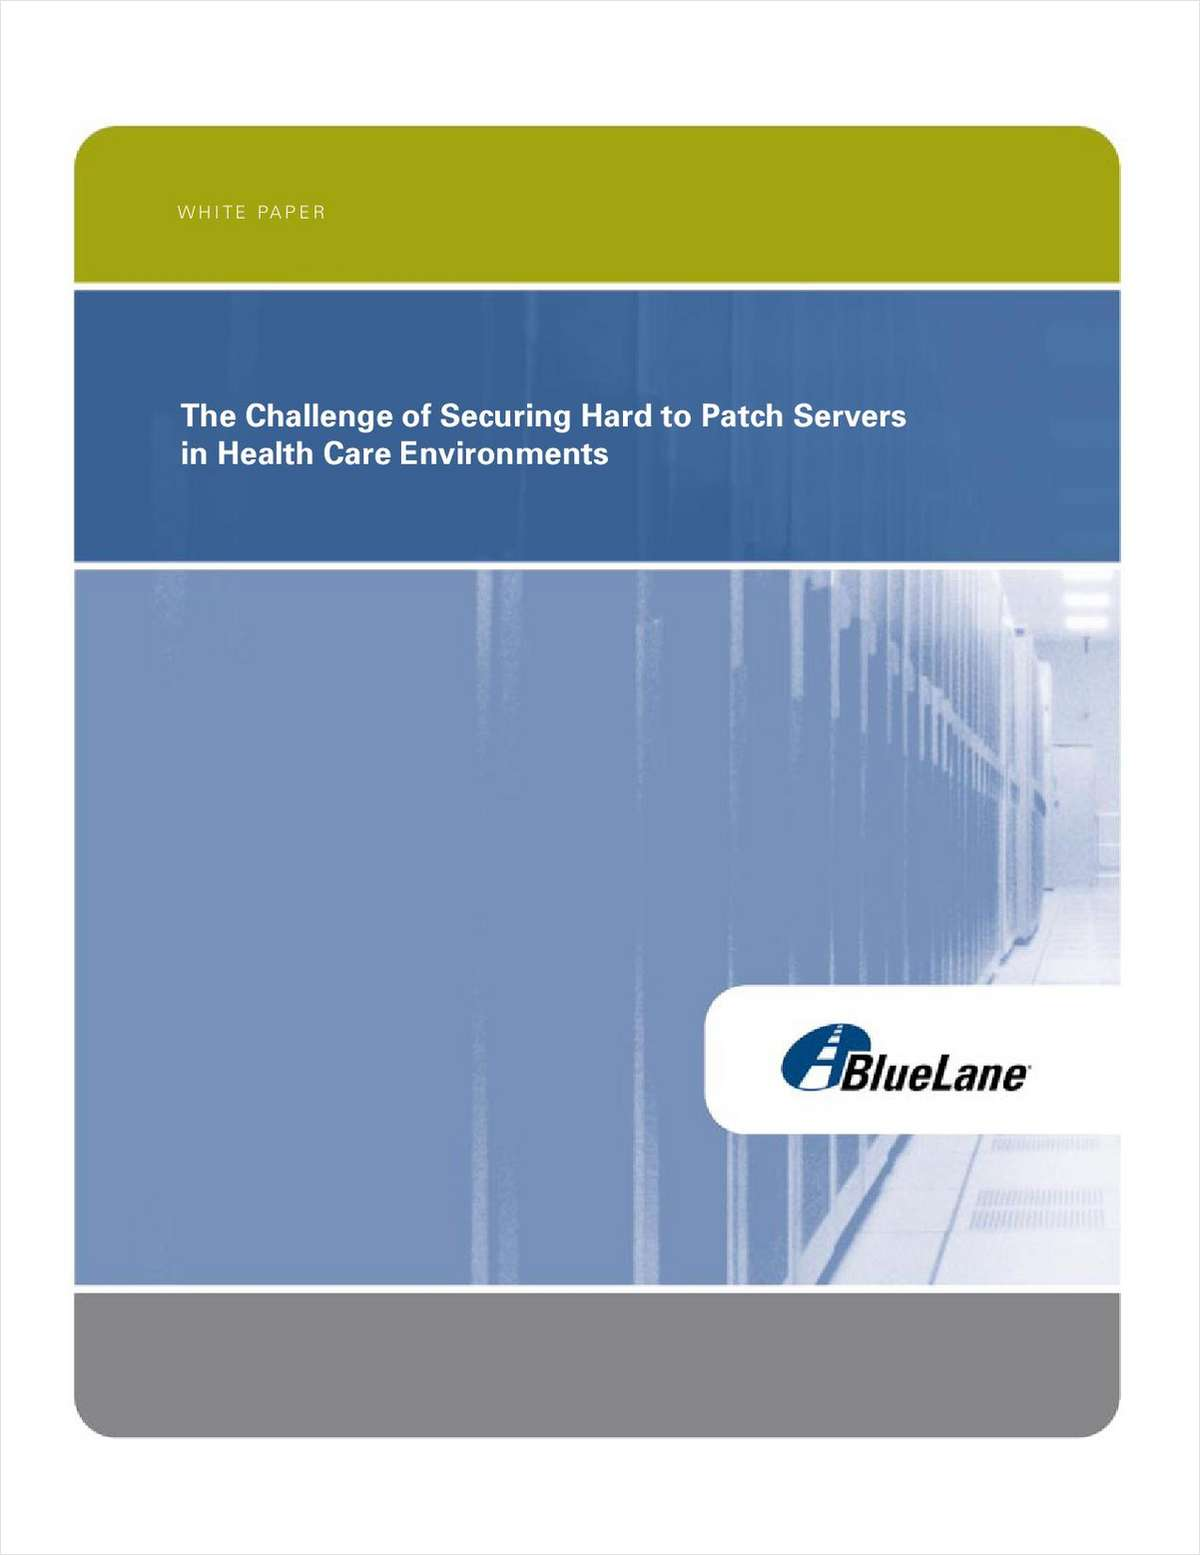 Challenge of Securing Hard to Patch Servers in Healthcare Environments